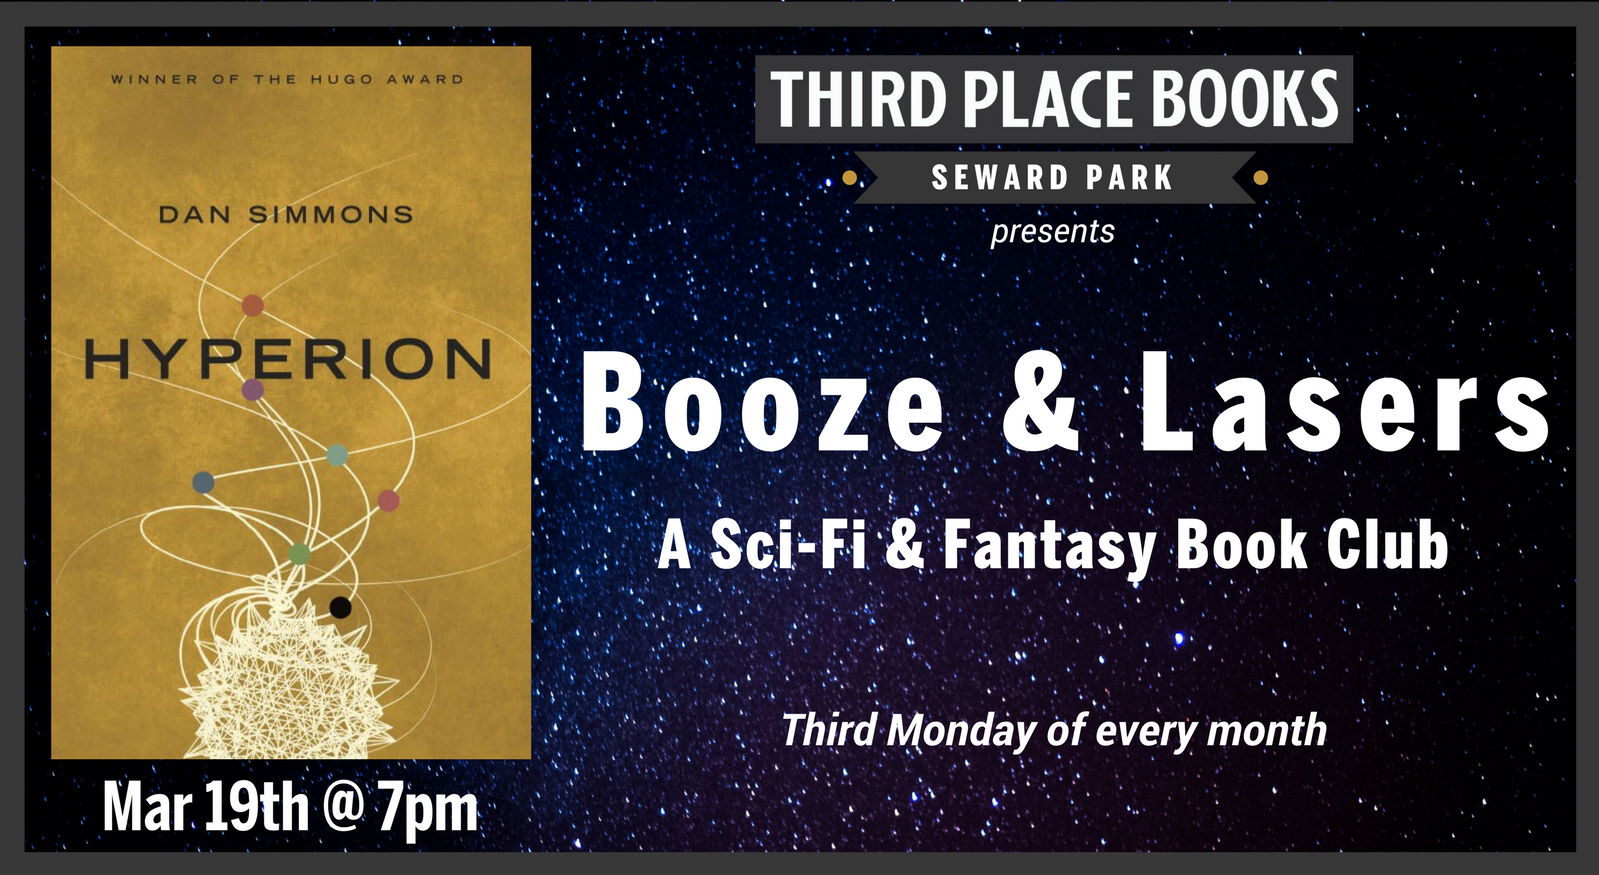 Booze & Lasers Book Club reading Hyperion by Dan Simmons on Monday, March 19th at 7pm